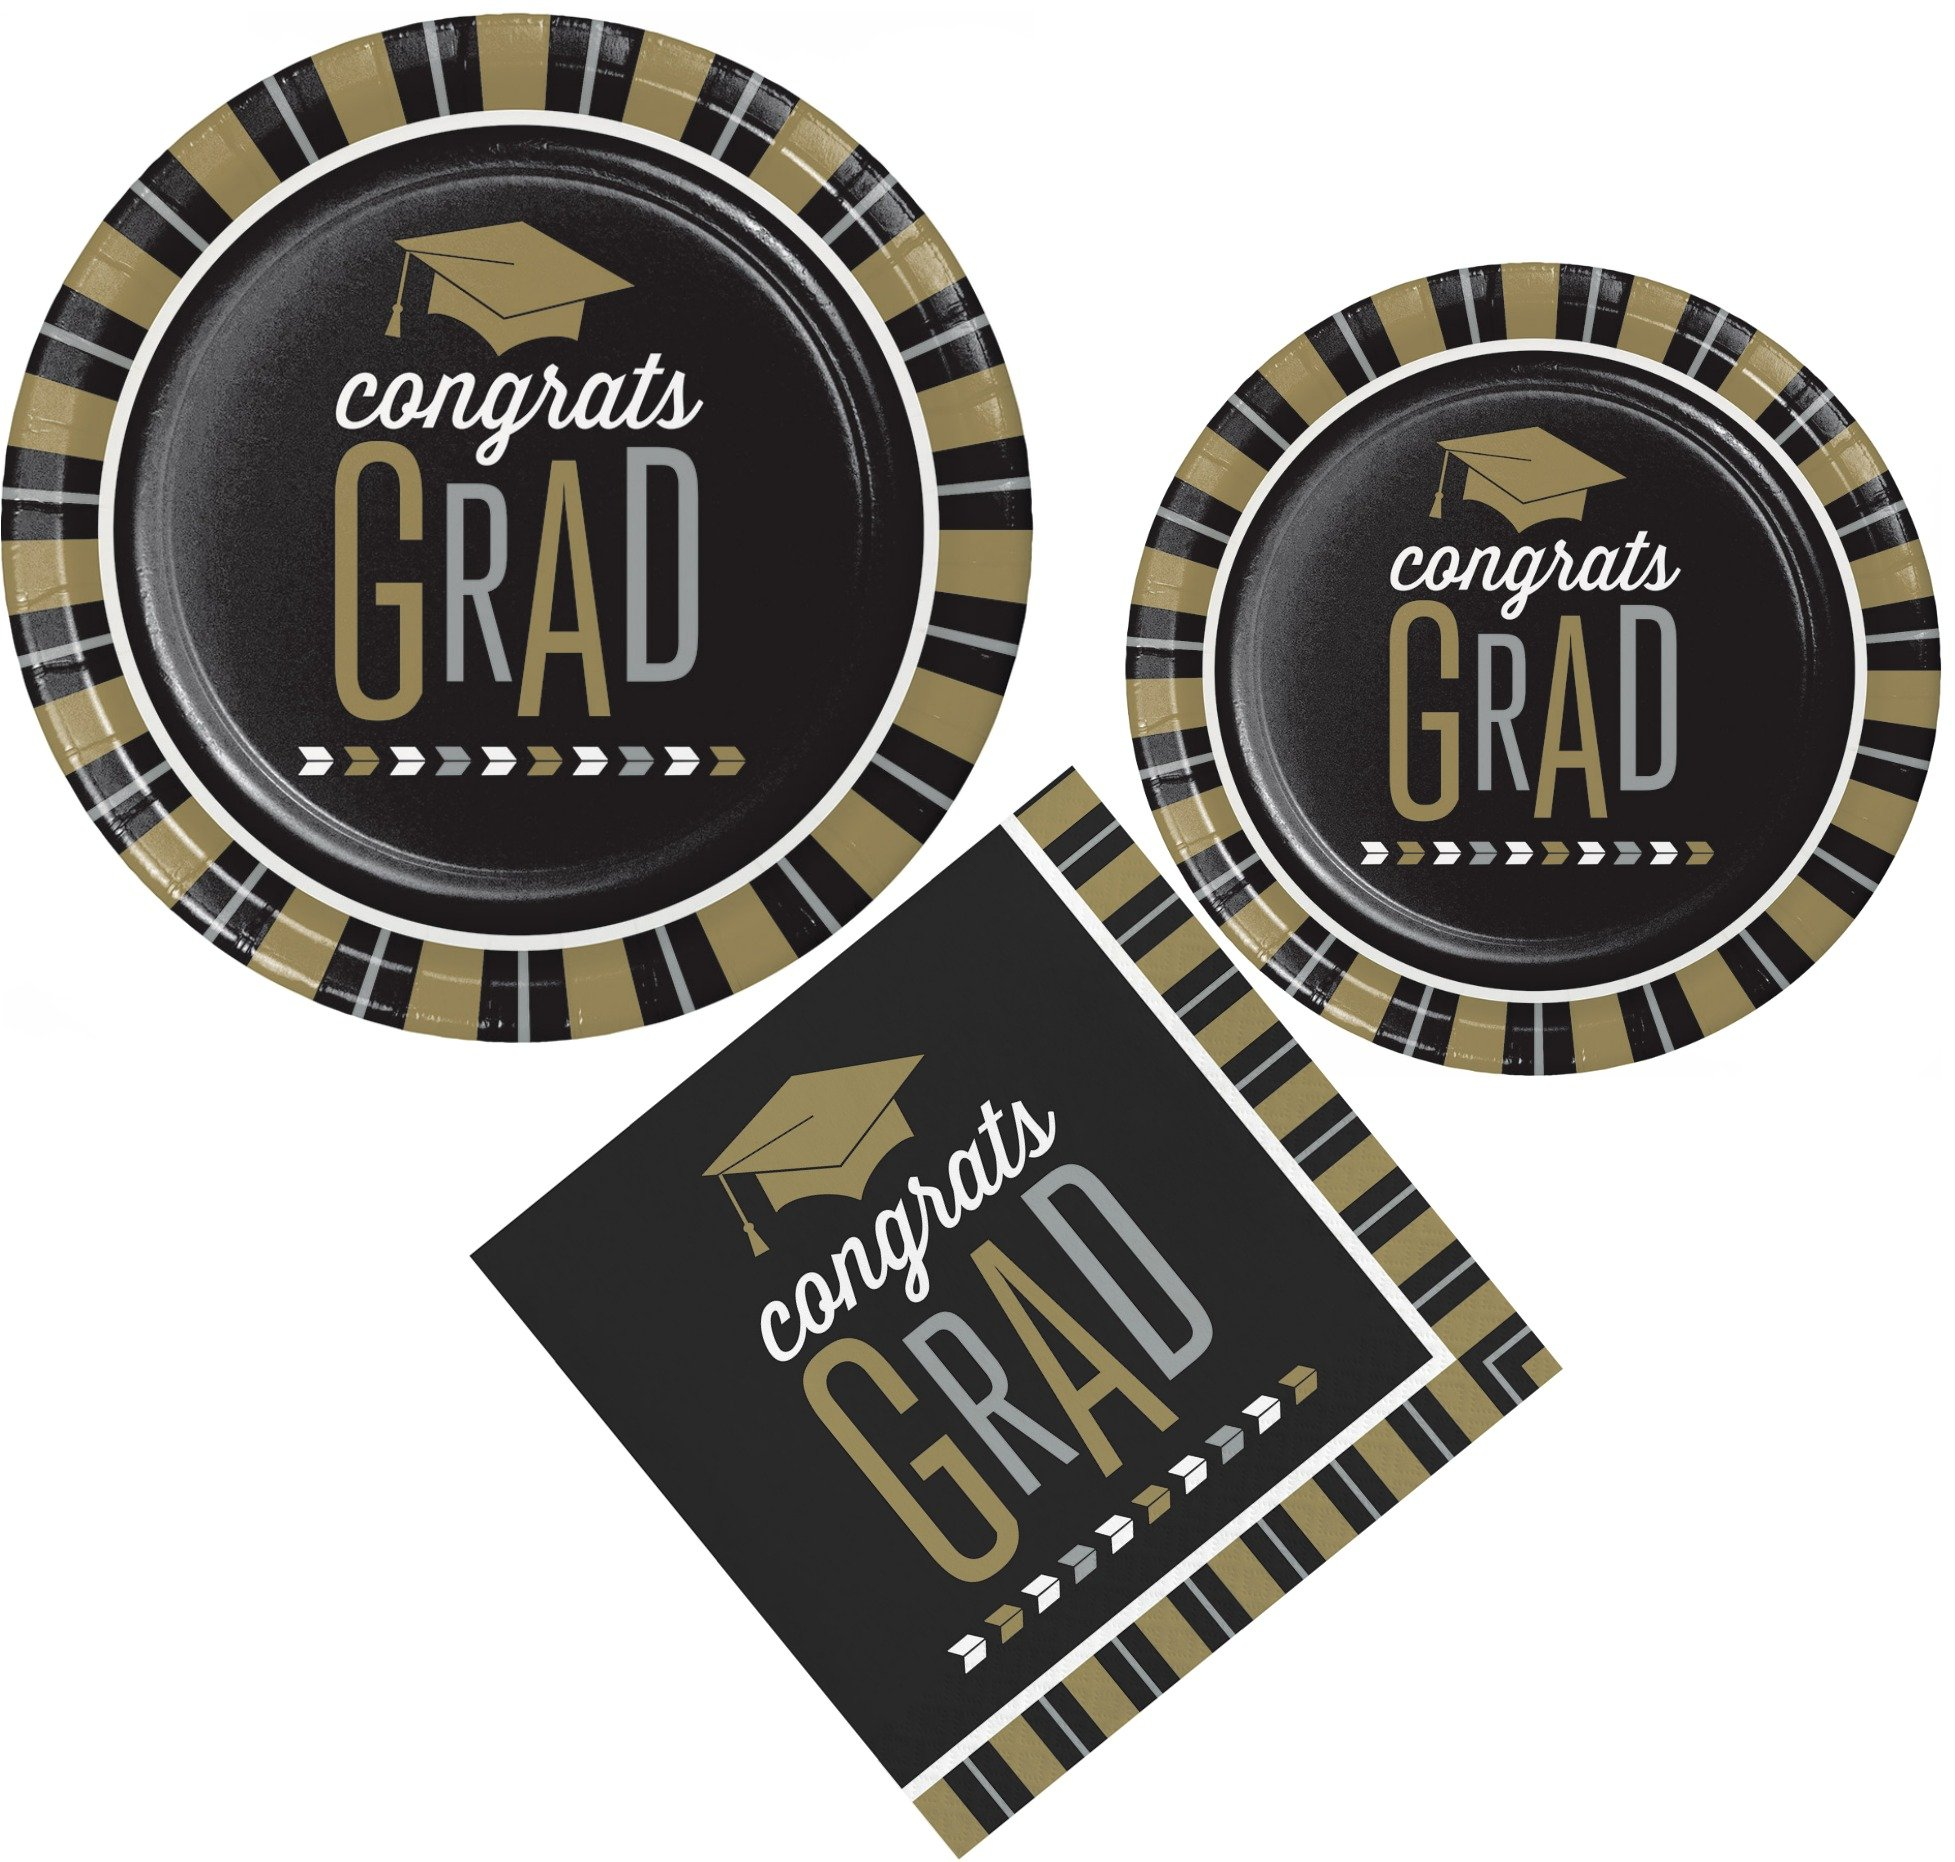 Glitzy Grad Graduation Themed Party Supply Pack! Bundle Includes Paper Plates and Napkins for 8 Guests